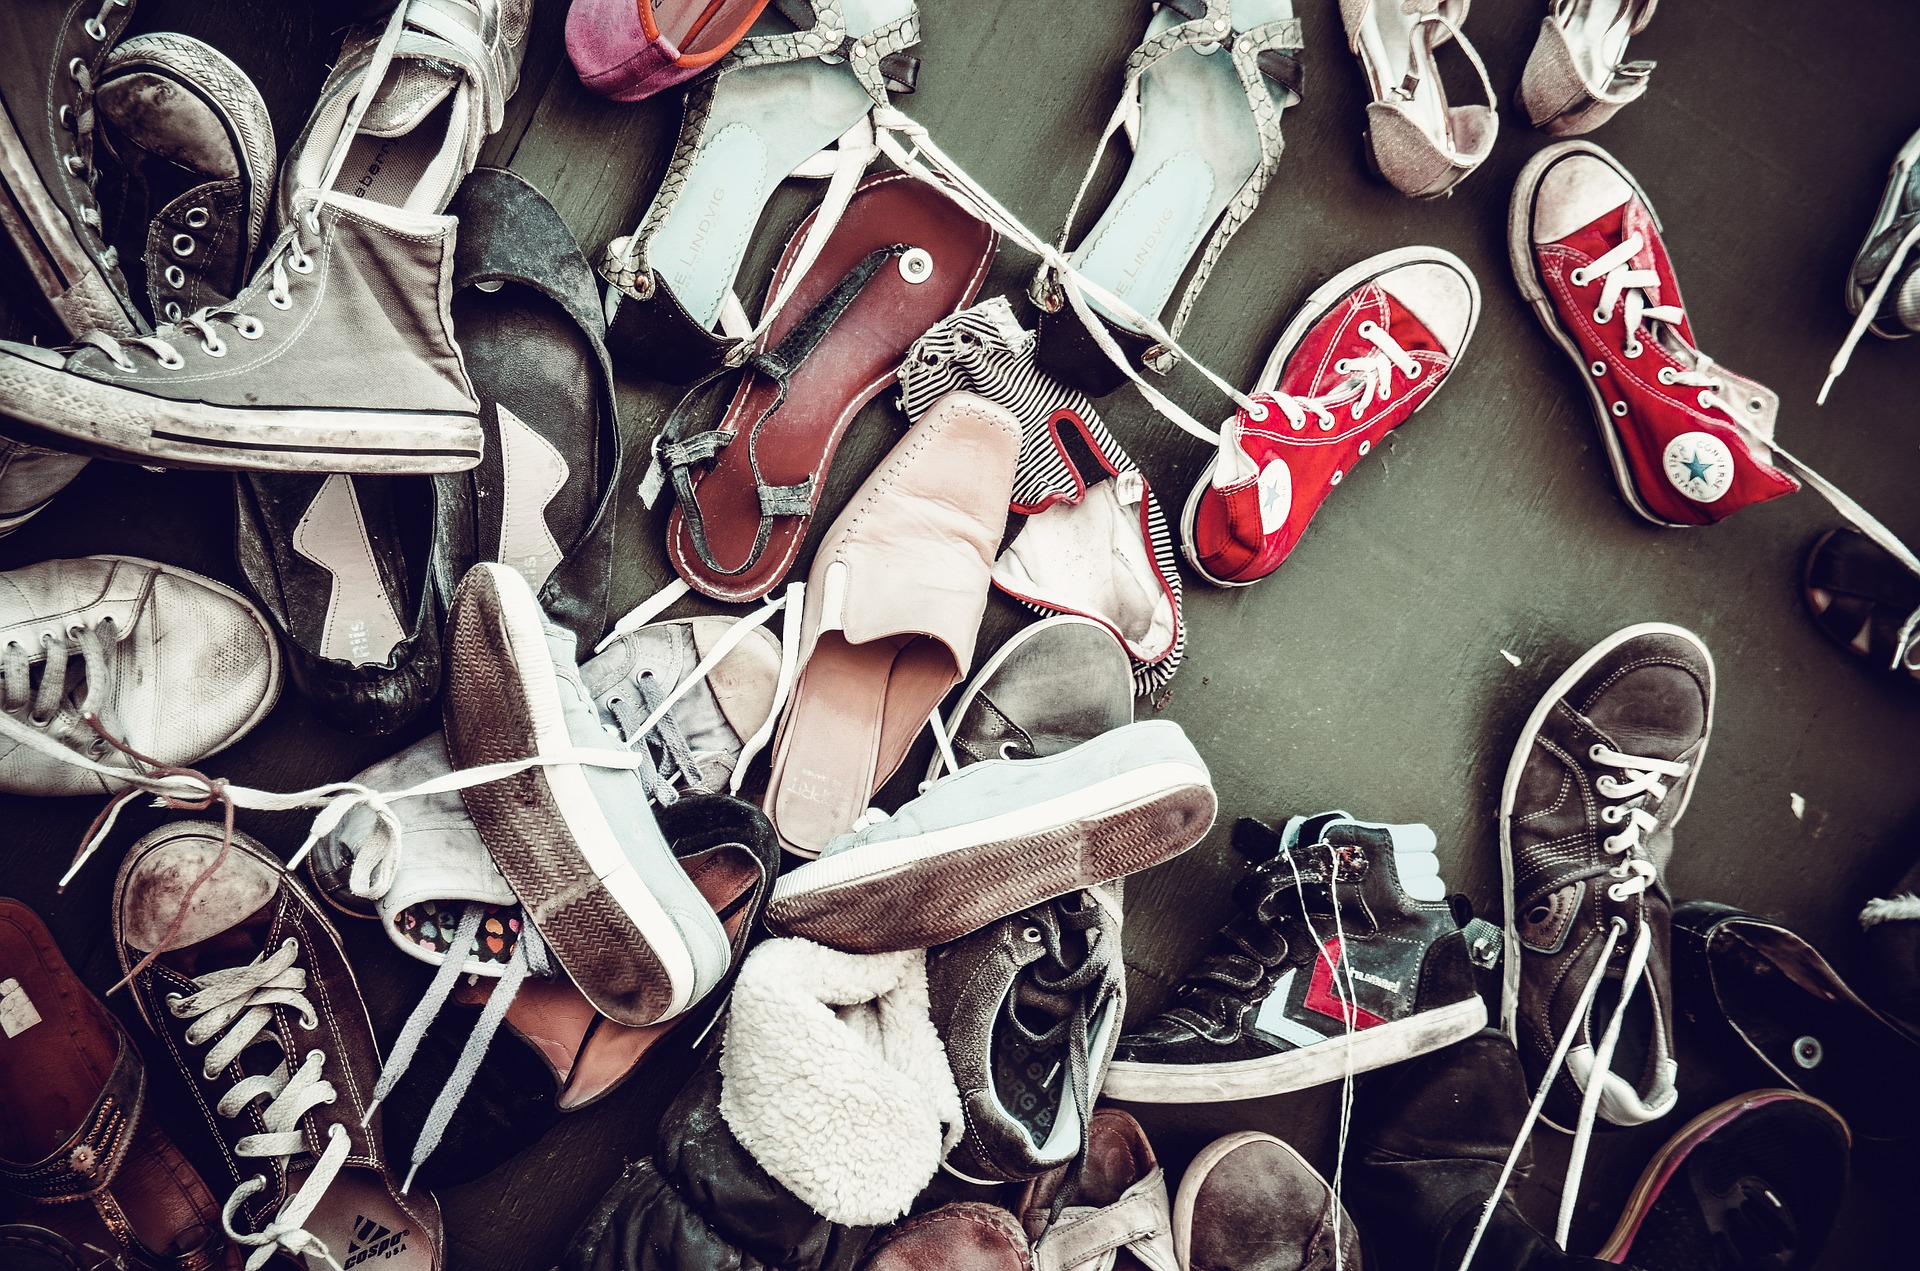 a big pile of worn sneakers, free image courtesy of Pixabay